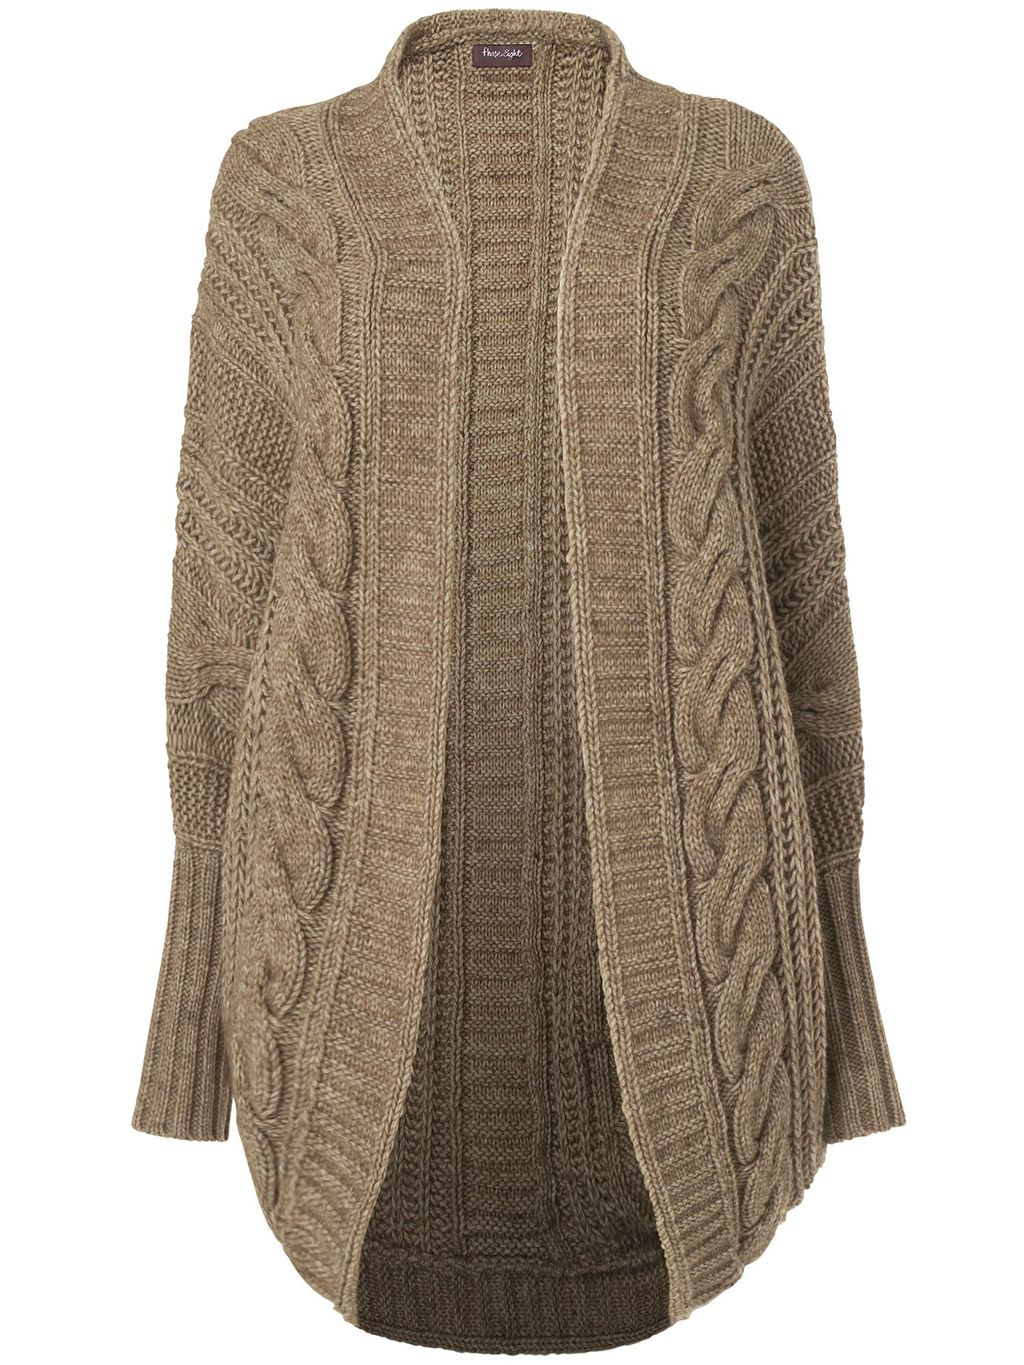 Knitting Patterns Cardigan Ladies : WomenS Wool Cardigans Uk - Bronze Cardigan